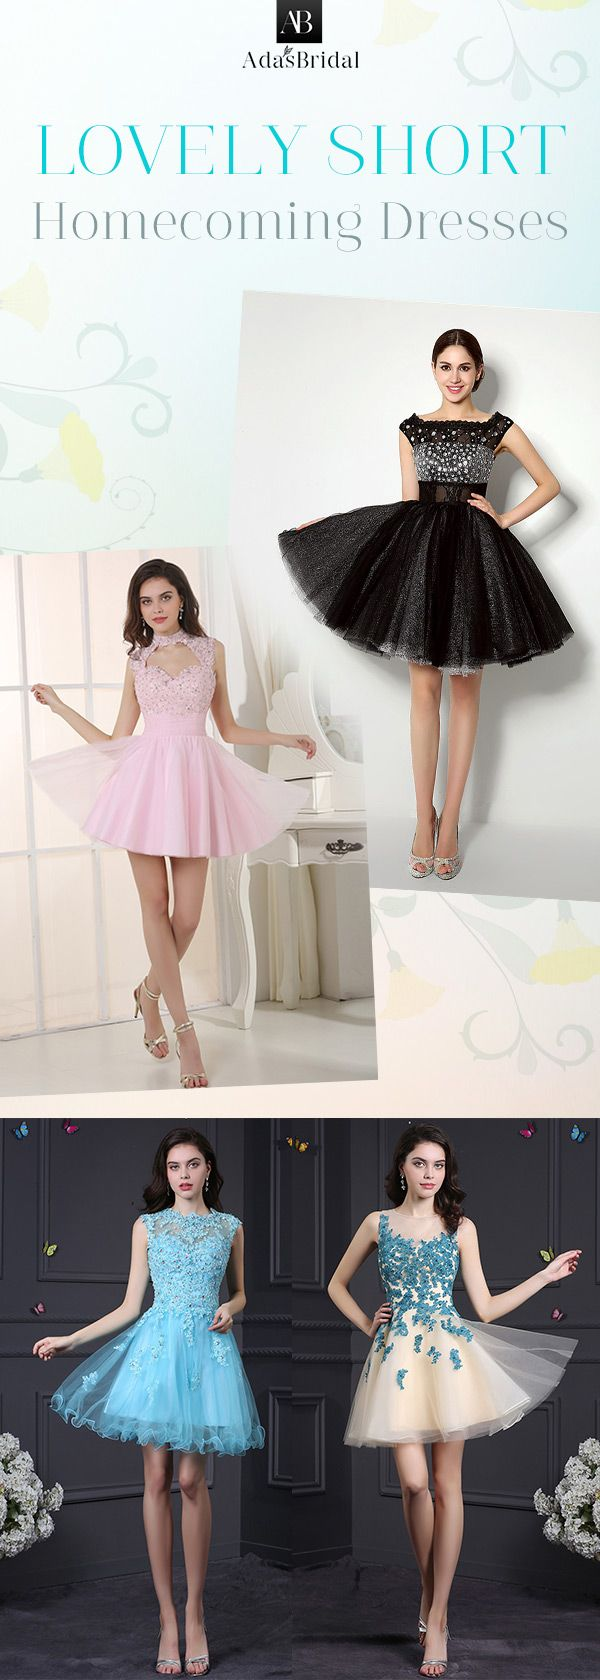 Lovely short homecoming dresses struggling to find the right